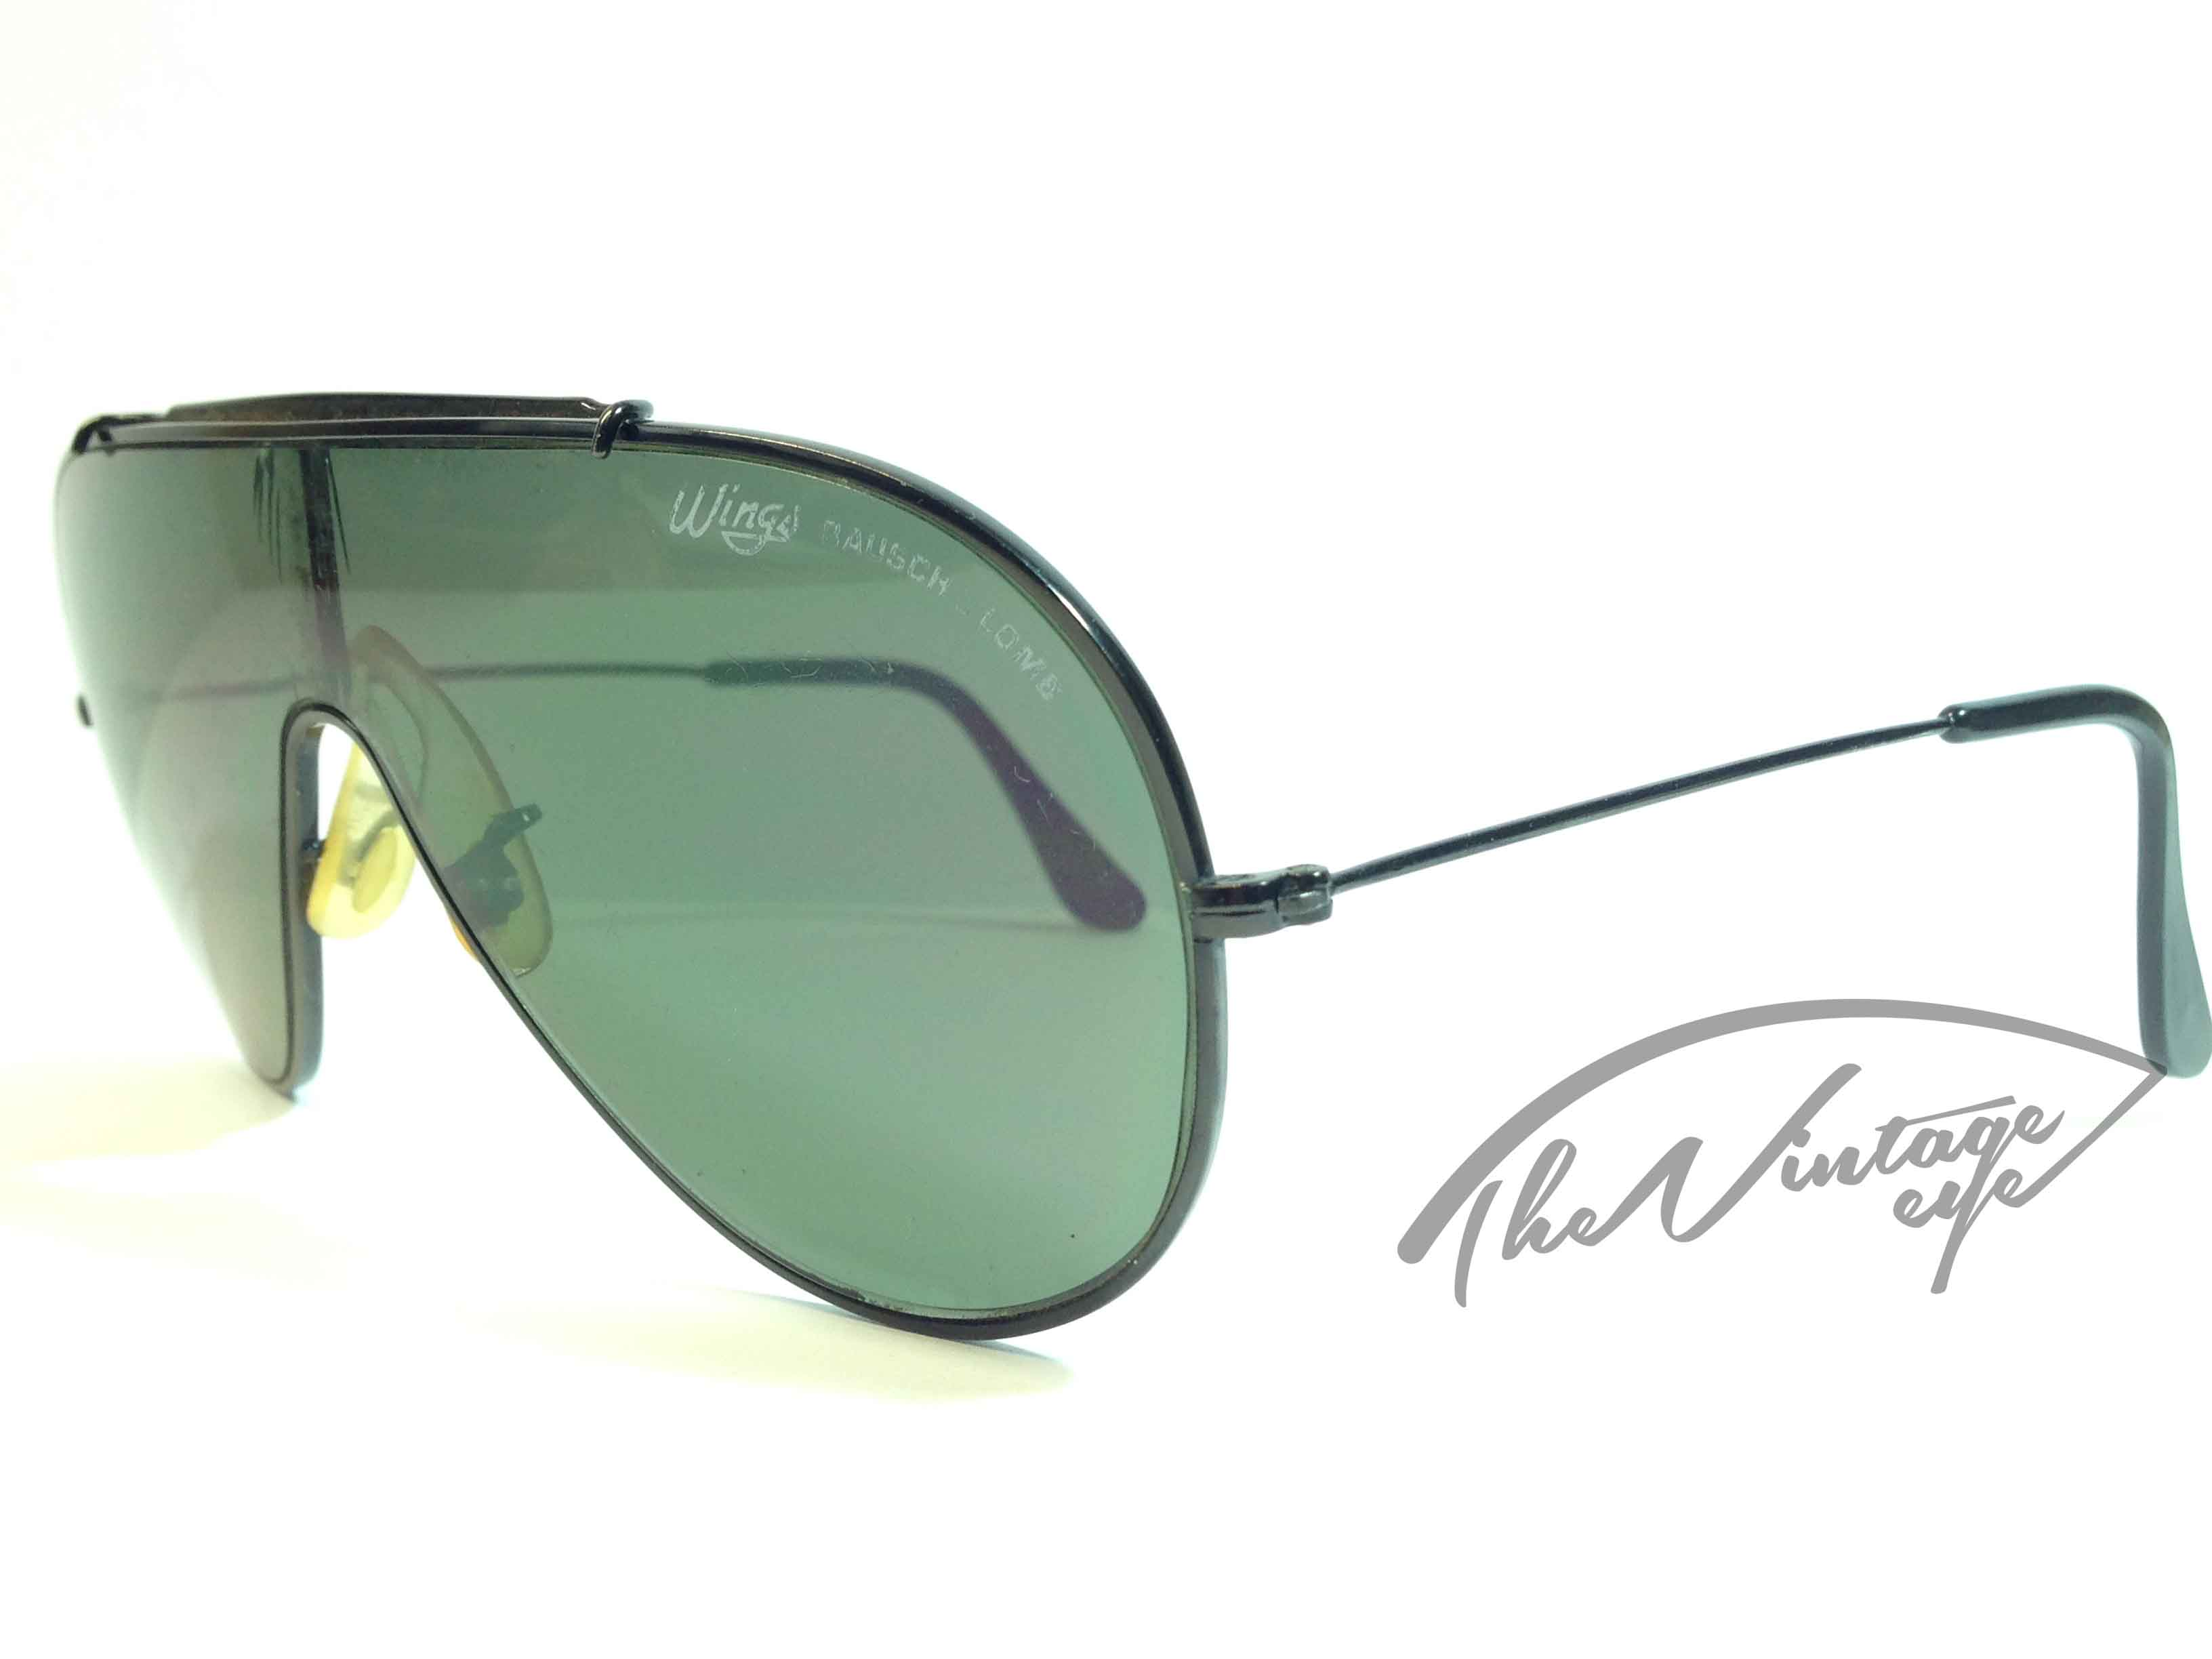 lentes ray ban bausch & lomb